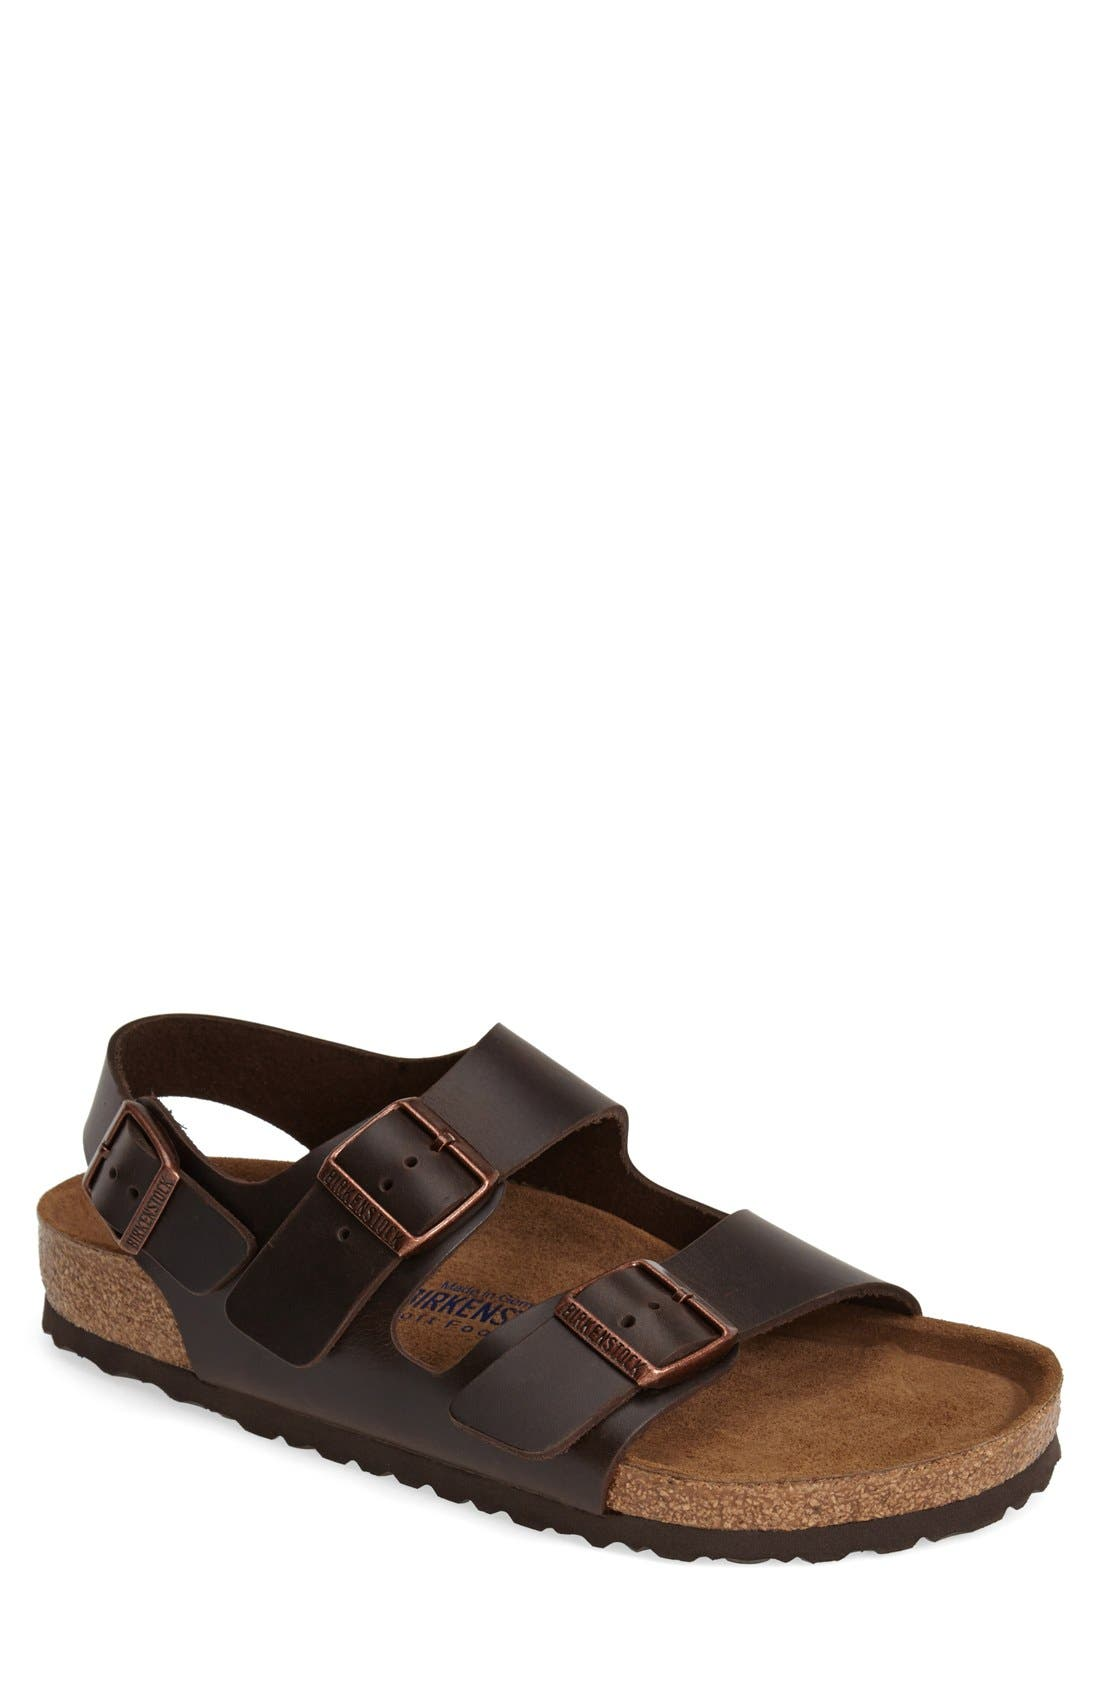 Alternate Image 1 Selected - Birkenstock 'Milano' Soft Footbed Sandal (Men)